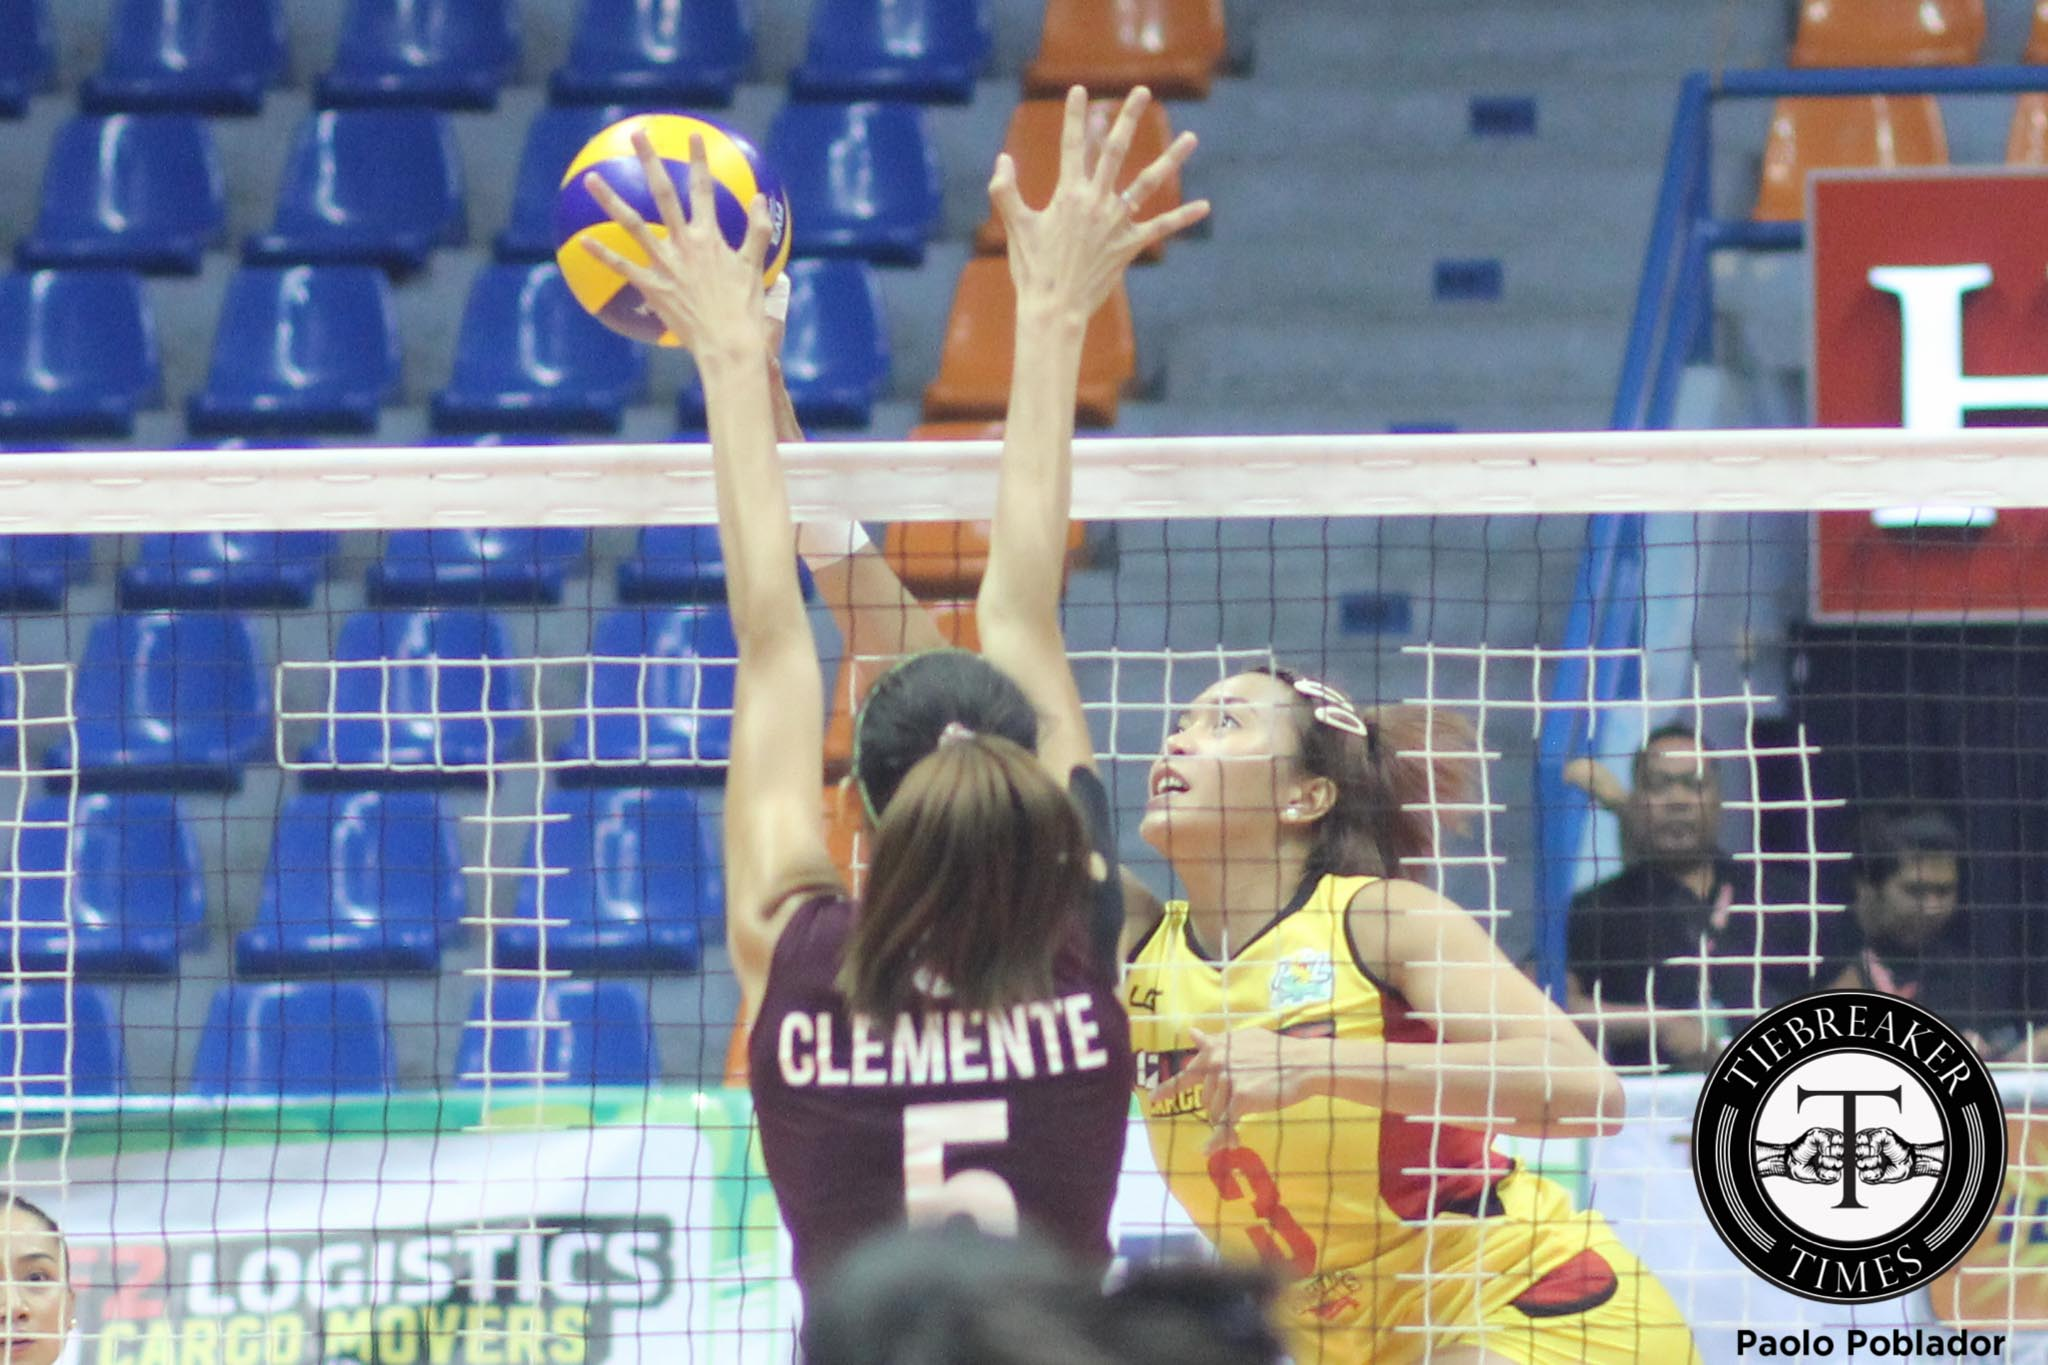 Philippine Sports News - Tiebreaker Times F2 Logistics eliminates resilient New San Jose for third win News PSL Volleyball  New San Jose Builders Victorias Maribeth Lara Lourdes Clemente Lilet Mabbayad Jamela Suyat F2 Logistics Cargo Movers Danika Gendrauli Aby Marano 2016 PSL Invitational Cup